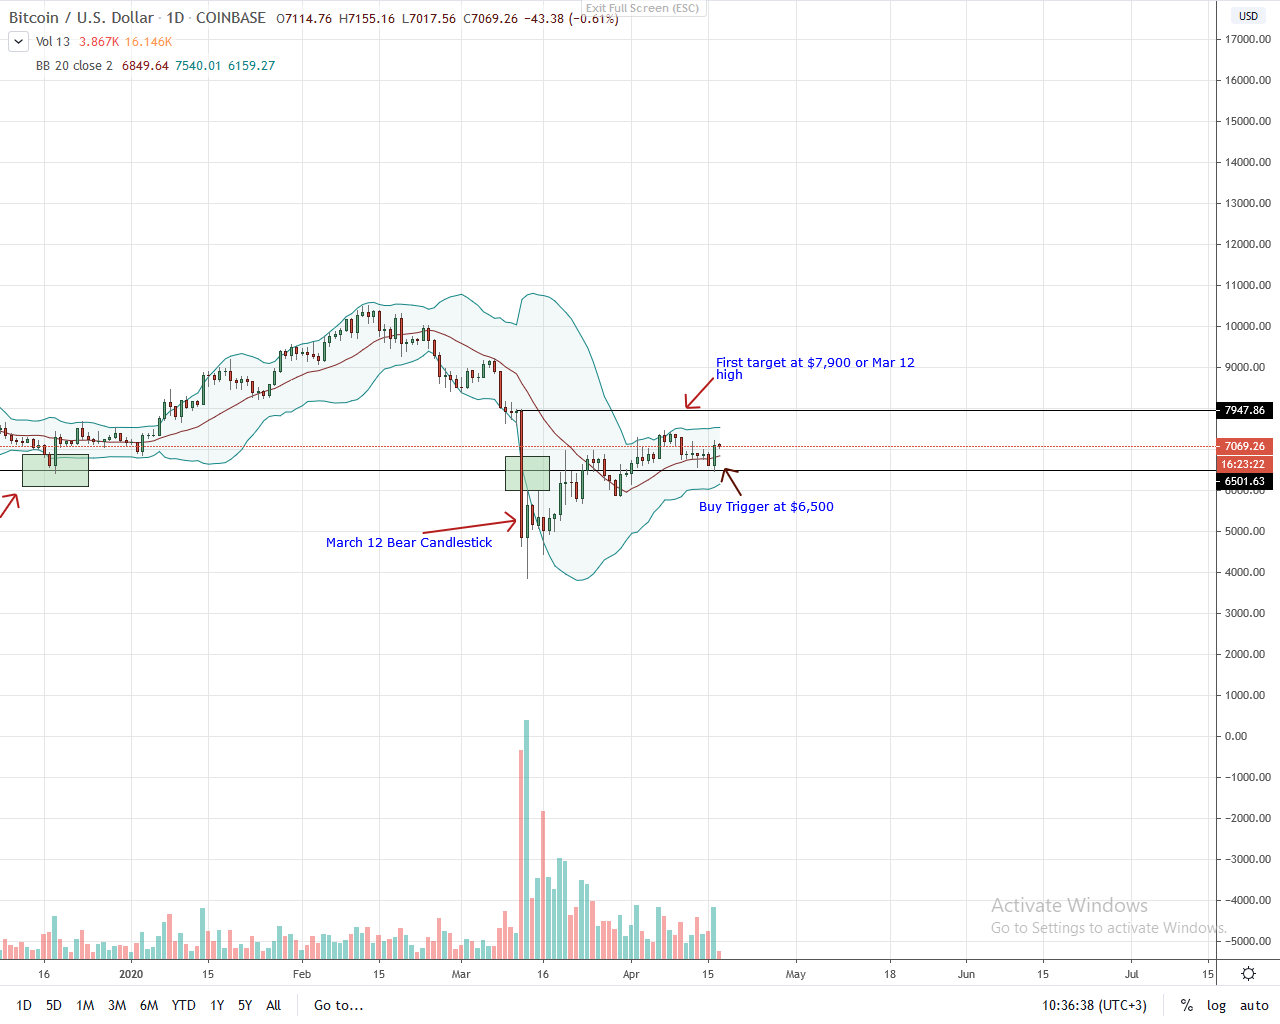 Bitcoin Daily Chart for Apr 17